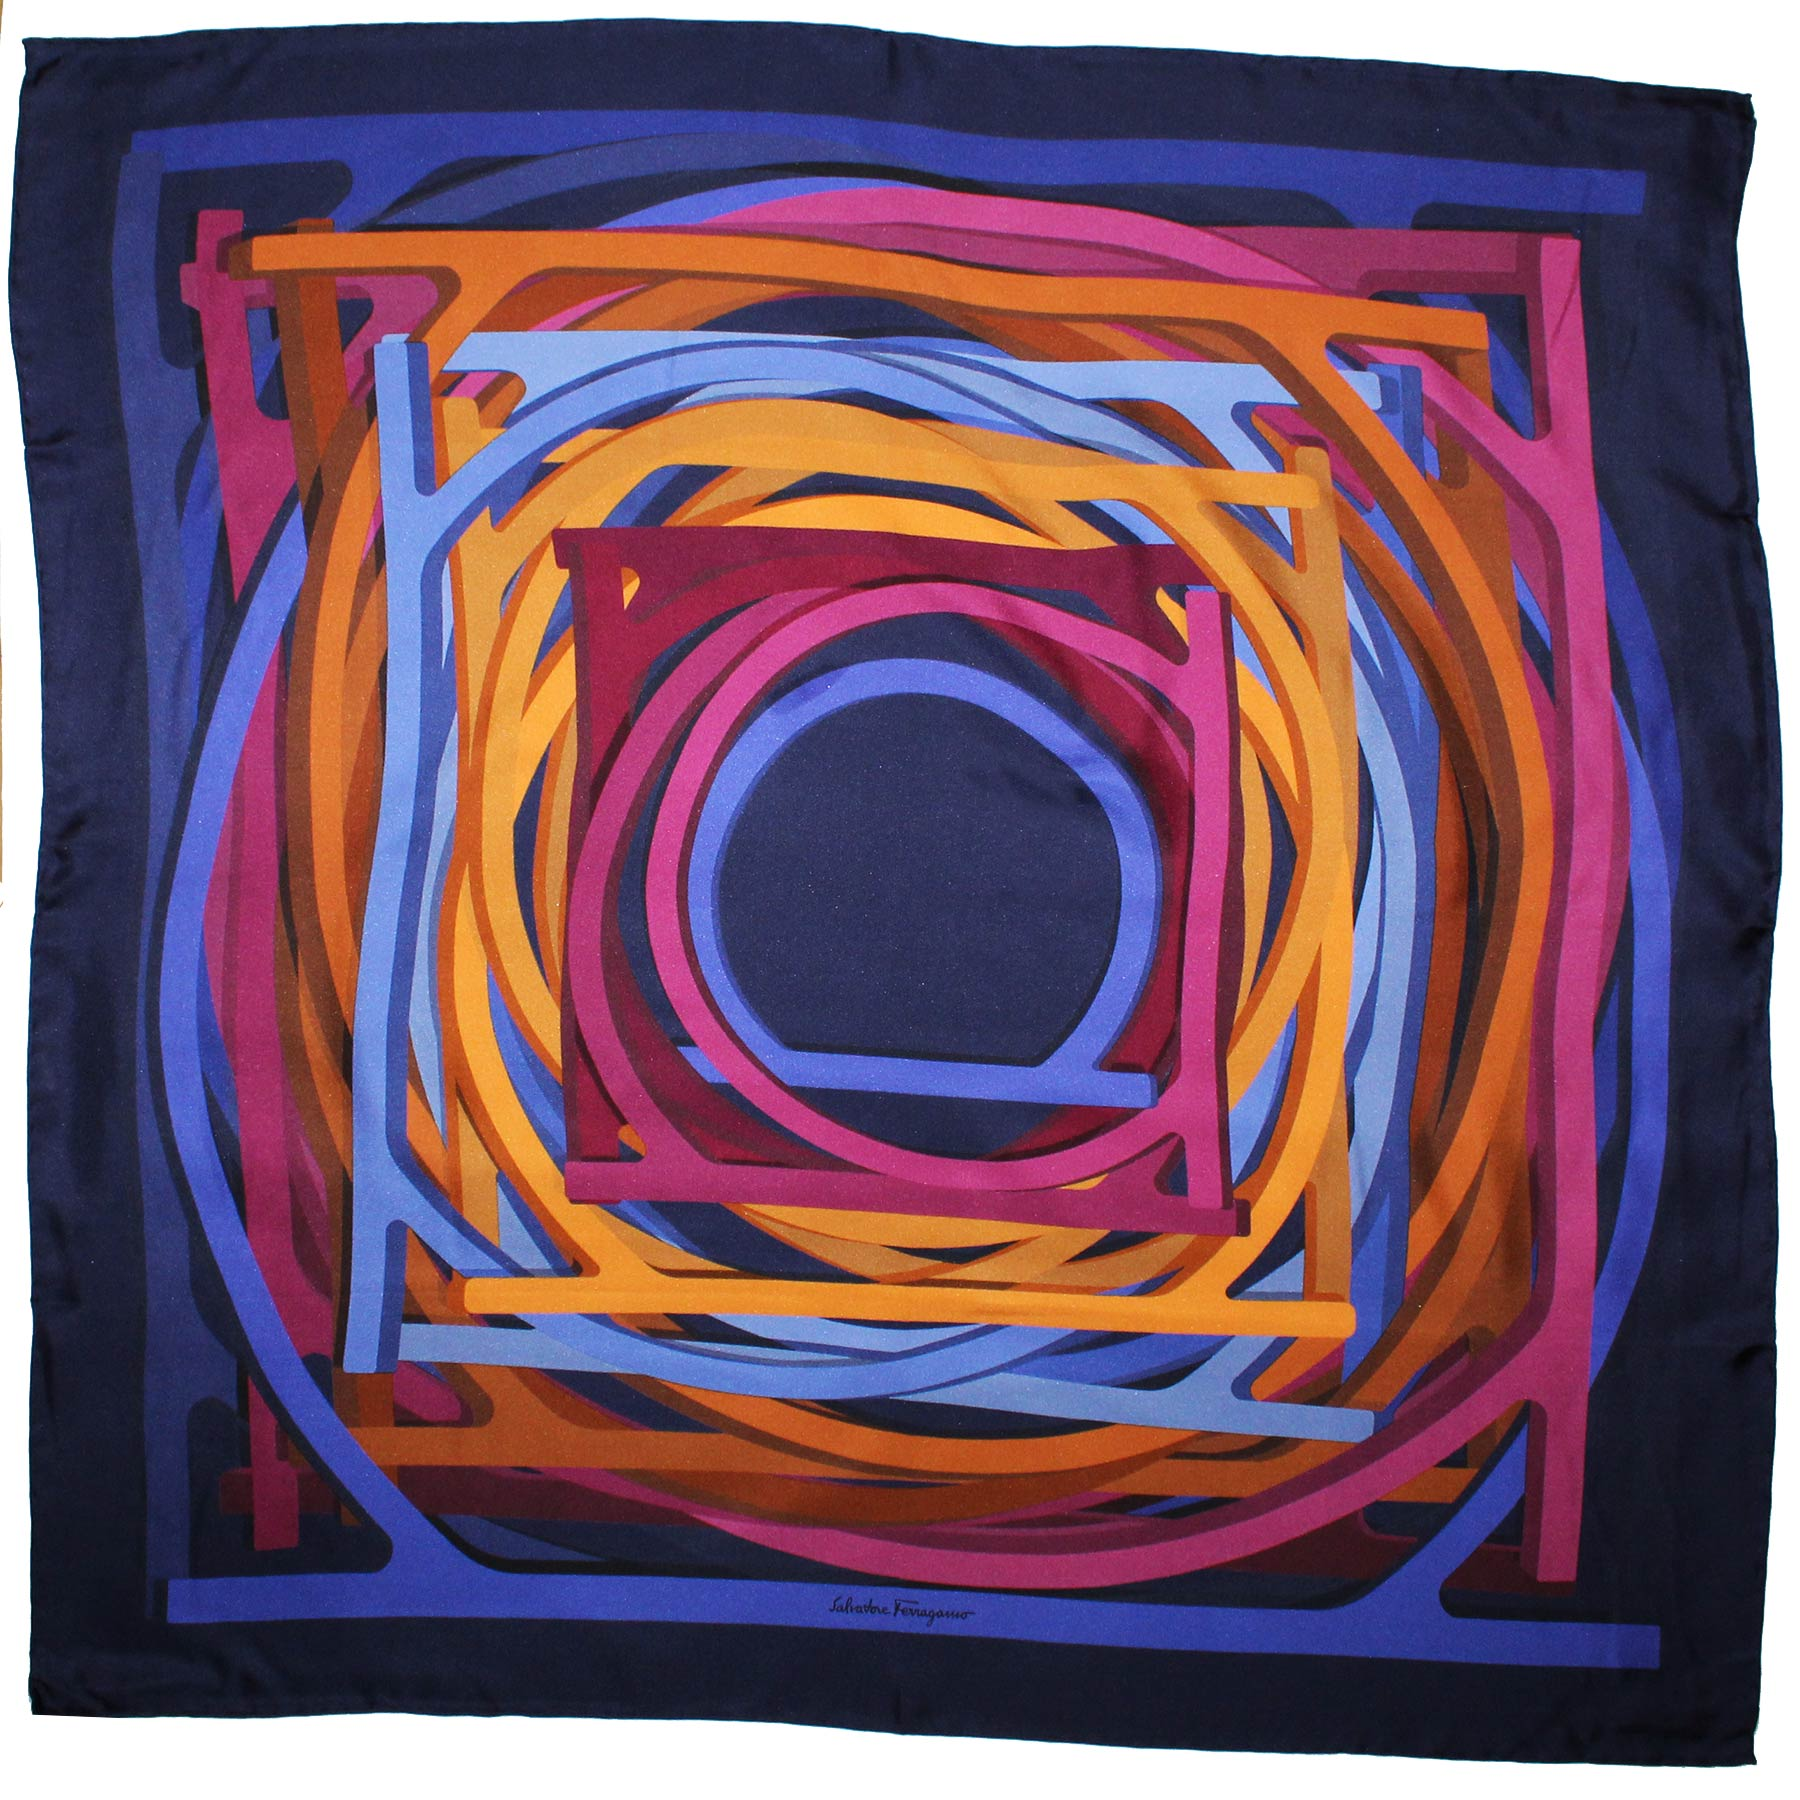 Salvatore Ferragamo Silk Scarf Navy Royal Blue Gancini - Large Square Foulard